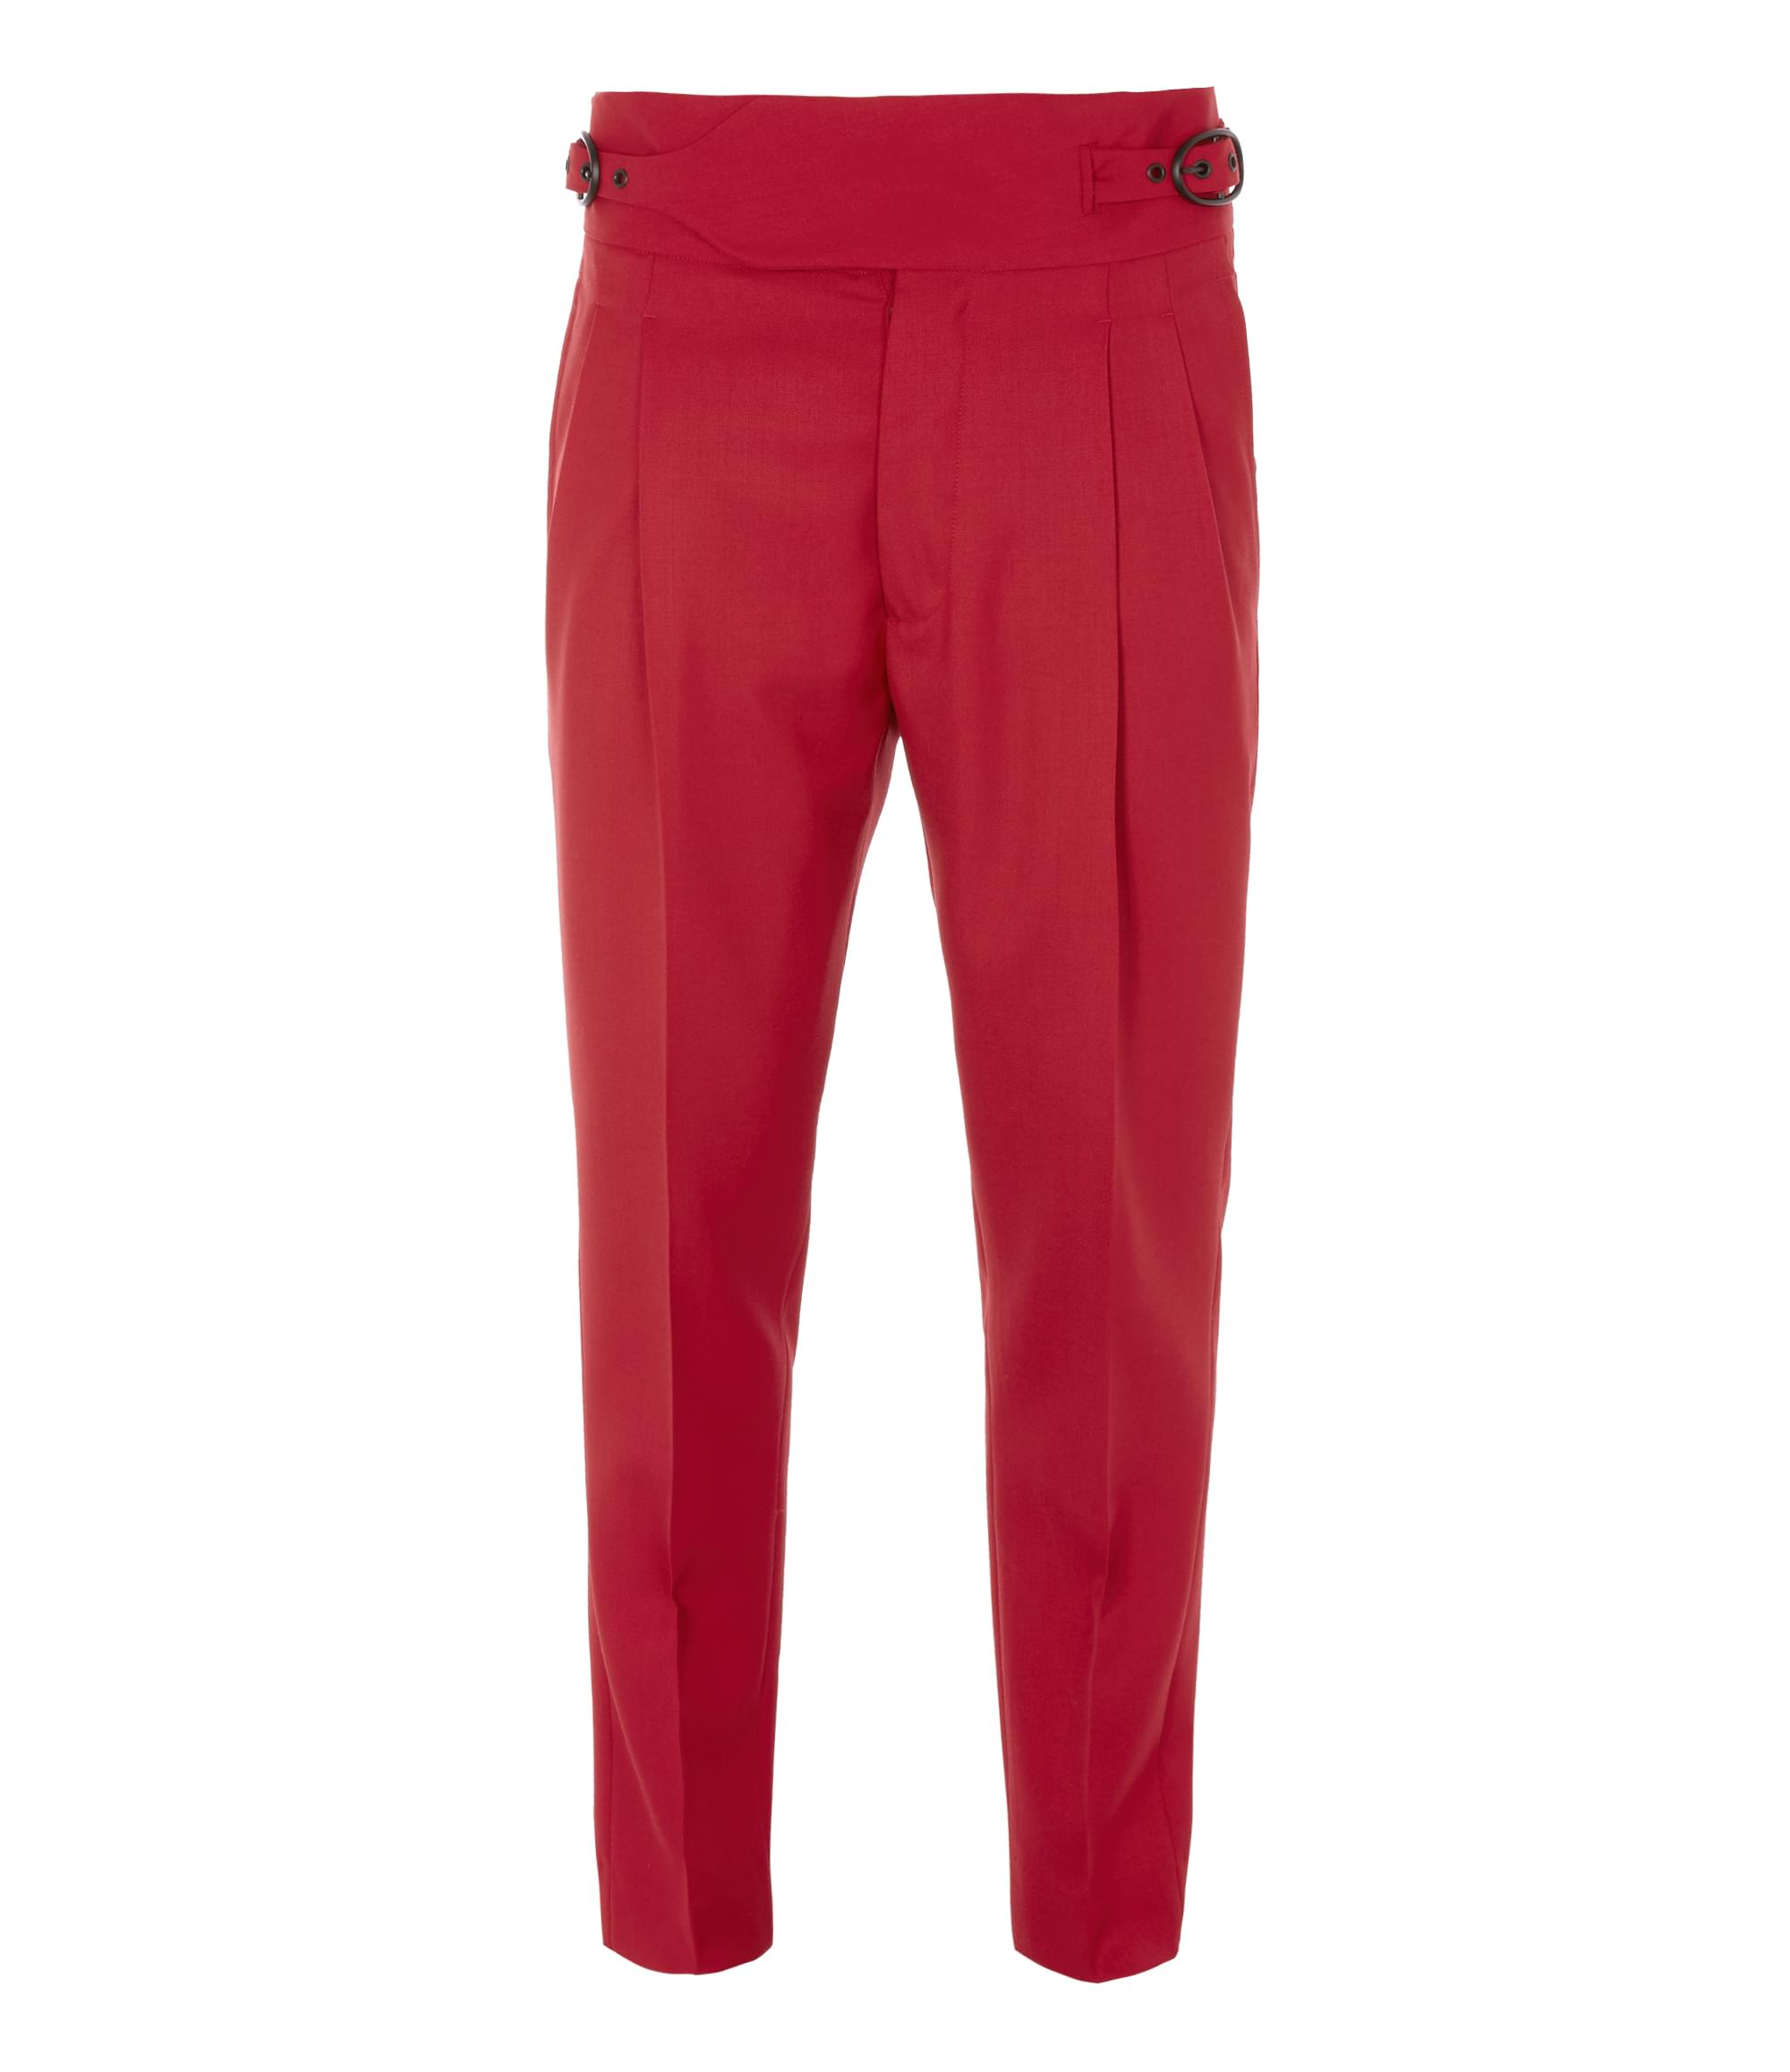 Vivienne Westwood New Classic Trousers Red